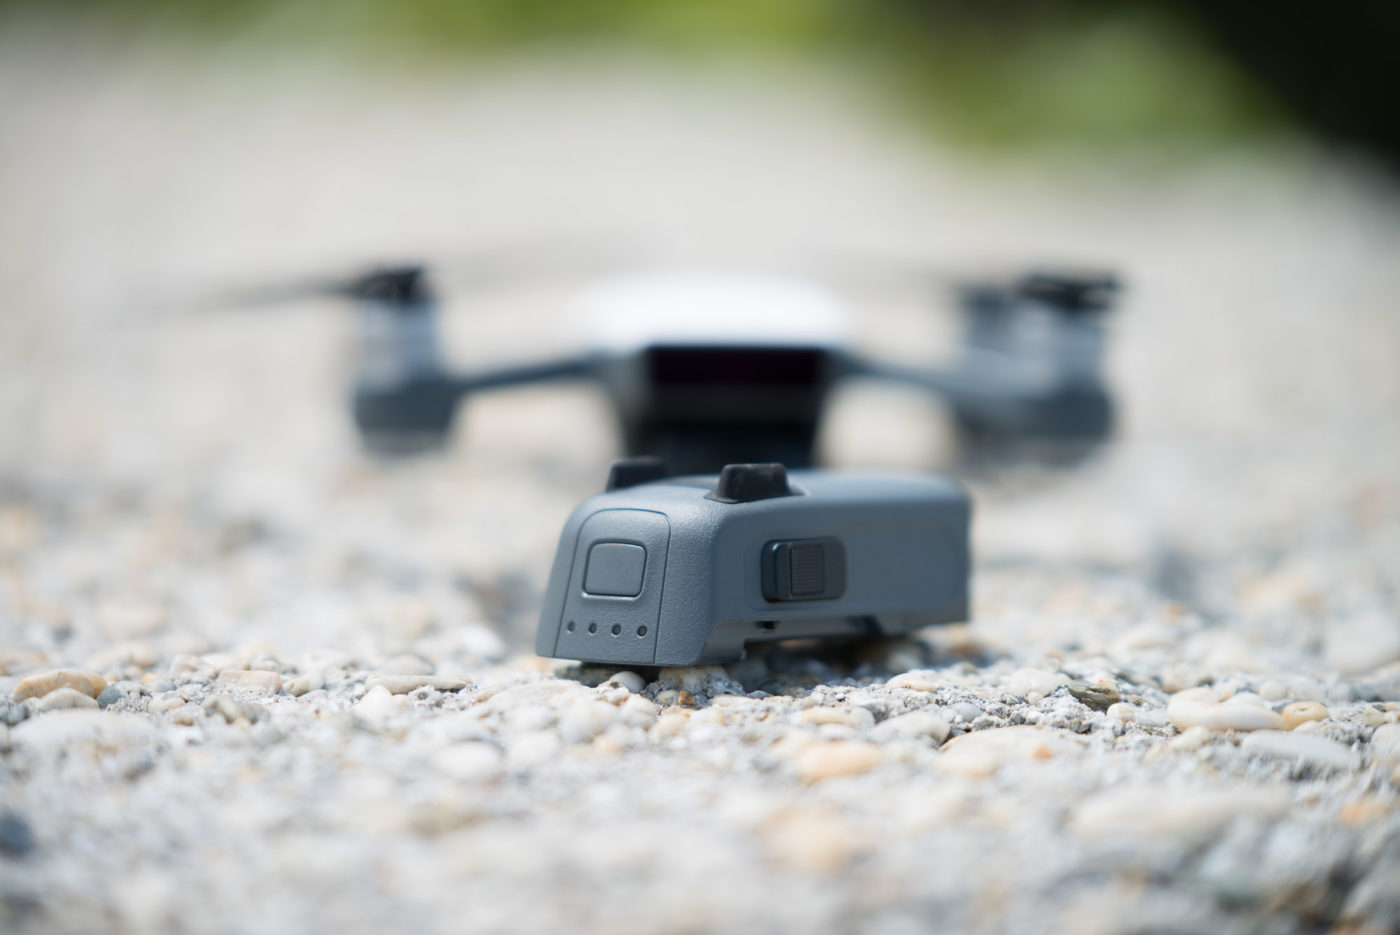 La batterie de vol intelligent du DJI Spark